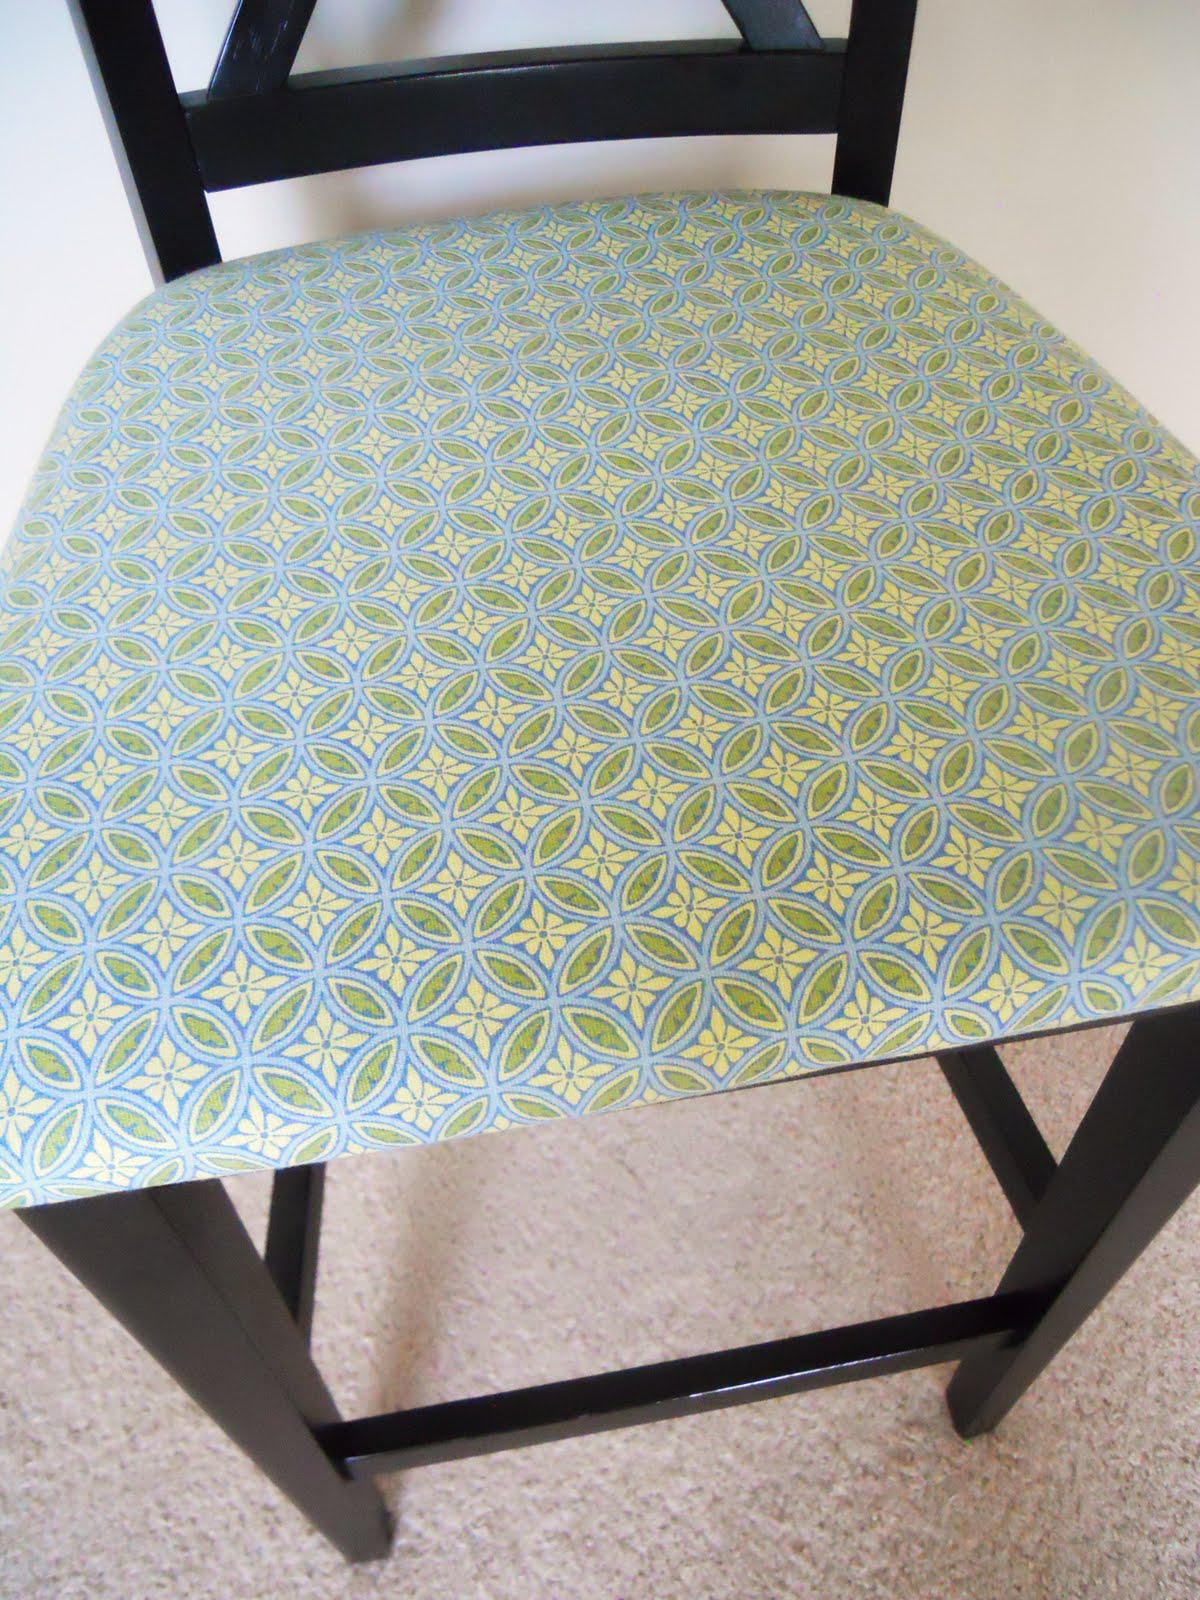 Chair Cushions For Kitchen Chairs How To Reupholster Kitchen Chairs Delightfully Noted